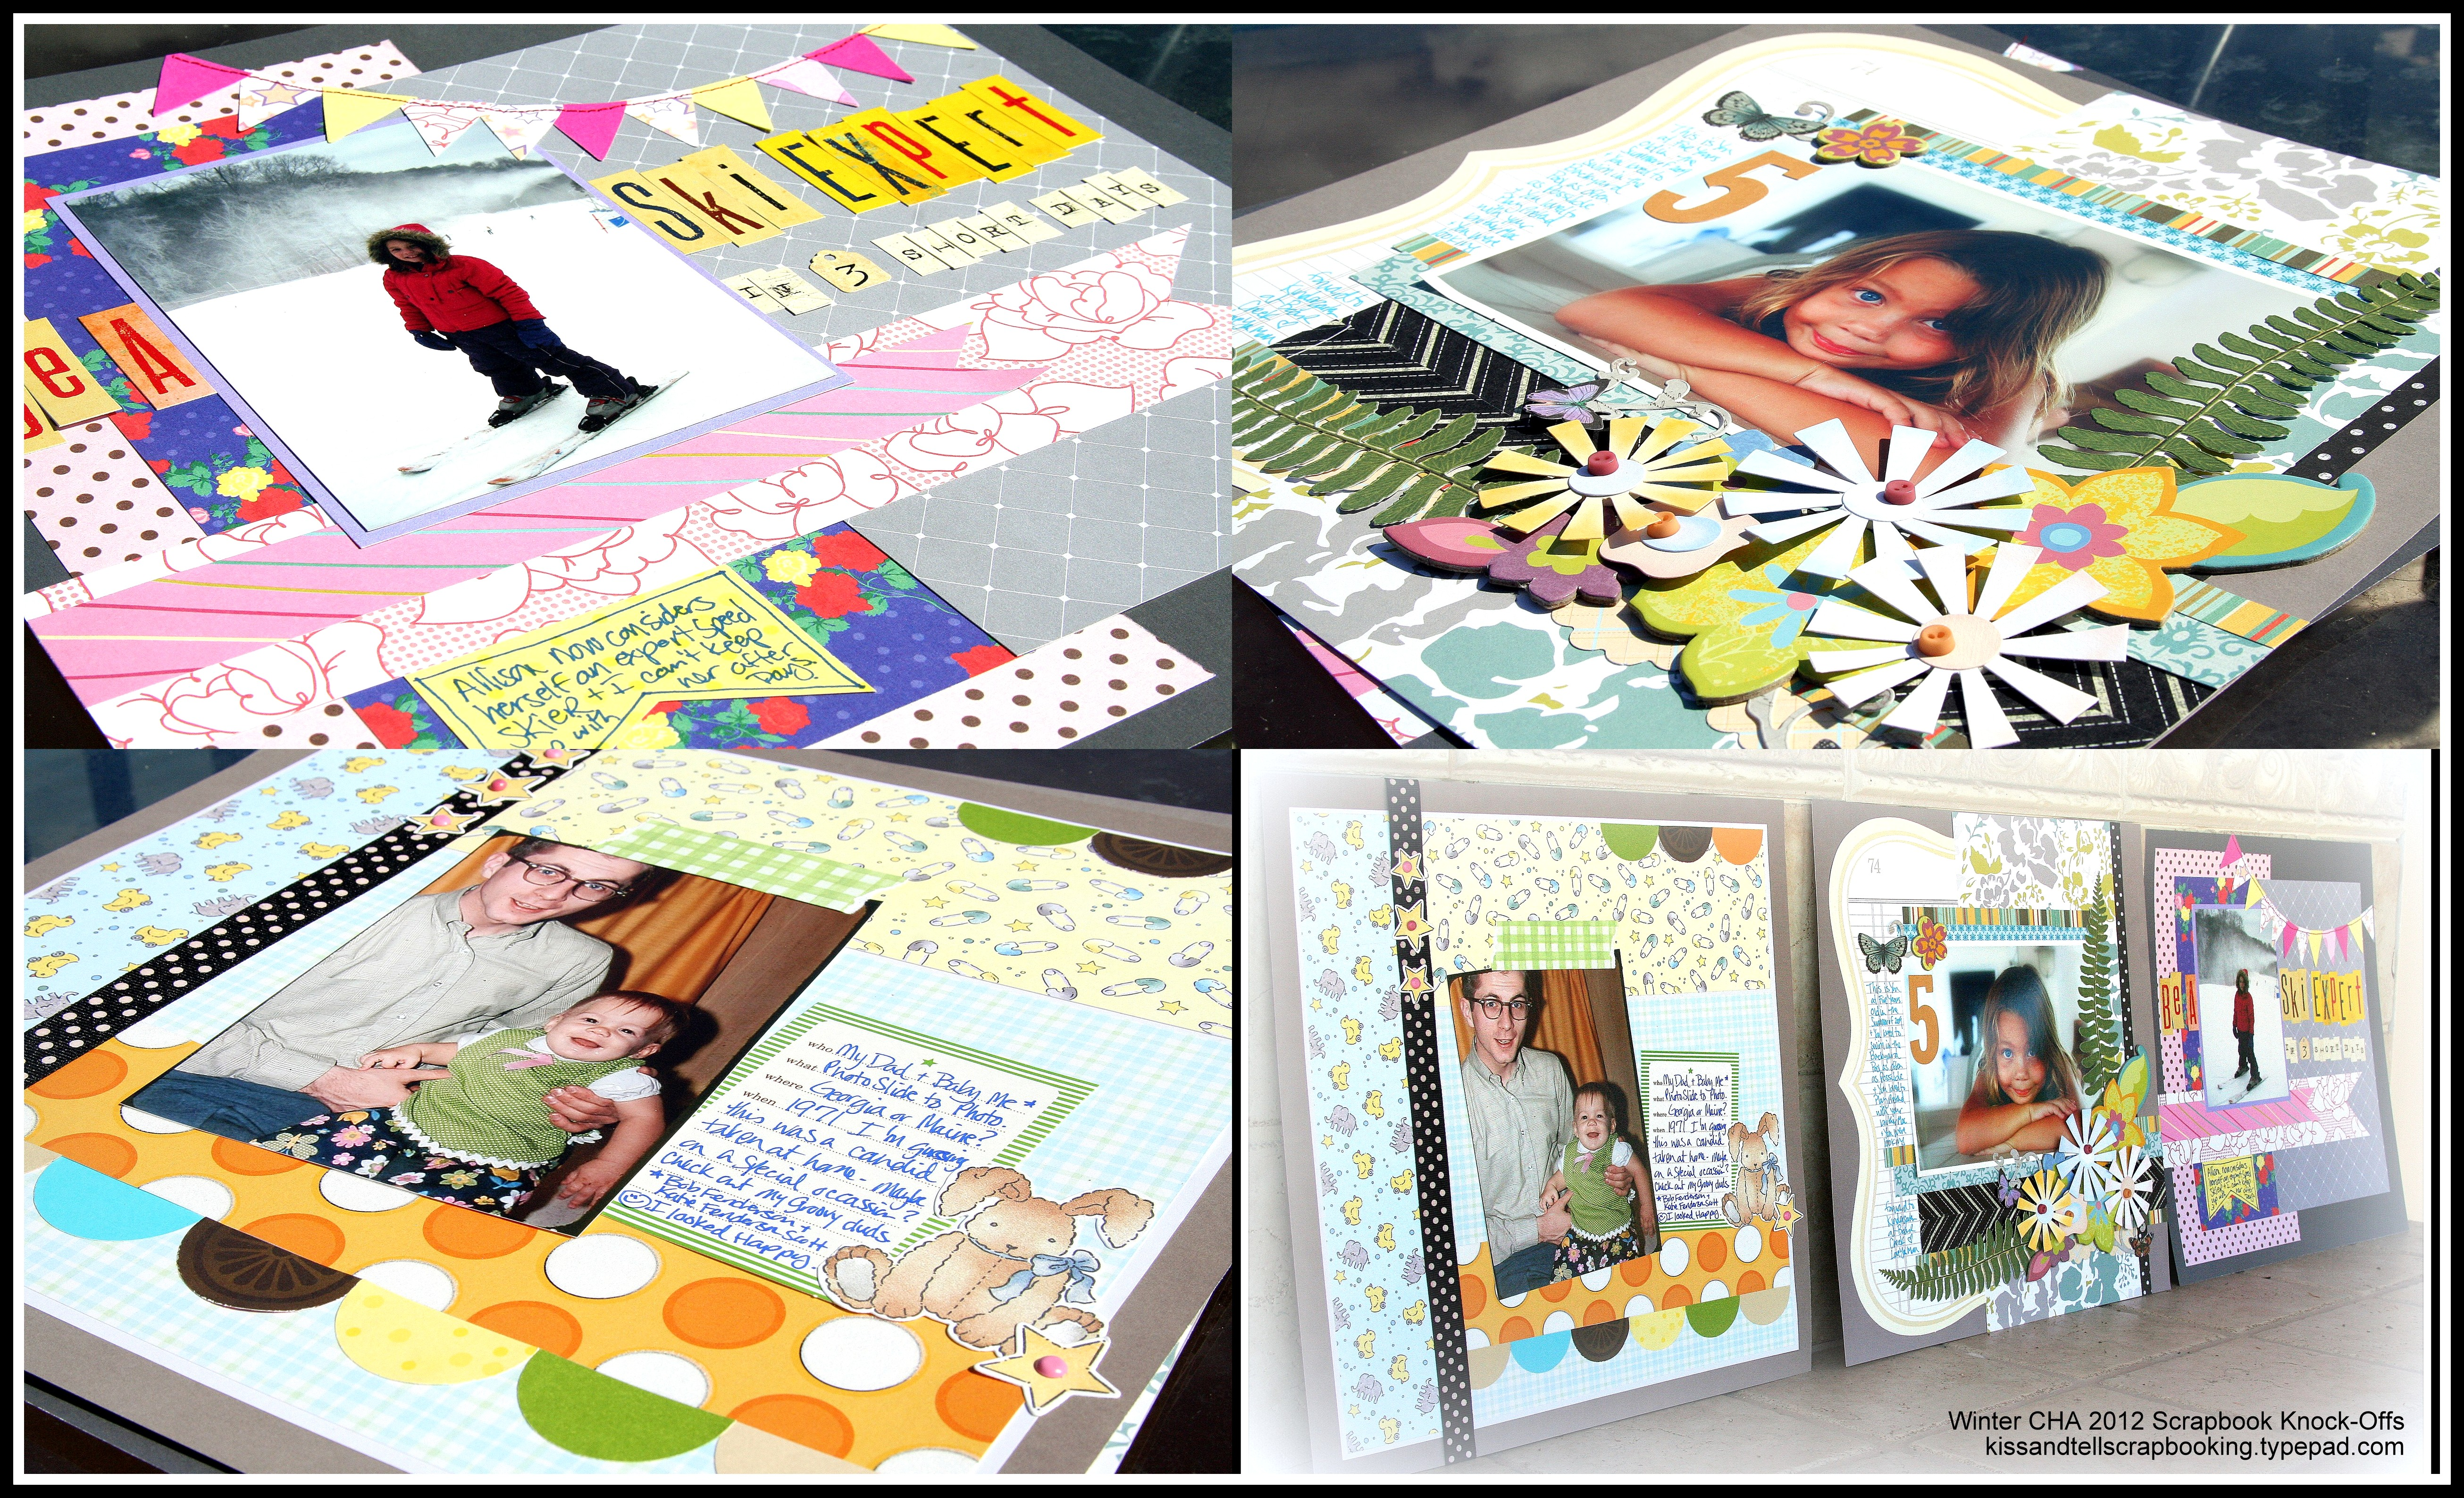 Scrapbook ideas without photos - I Ve Been Watching The Winter 2012 Cha Trends And Sneak Peeks And Scrapbook Layouts On Pinterest And Through Nancy Nally S Site With A Most Awesome Chart Of